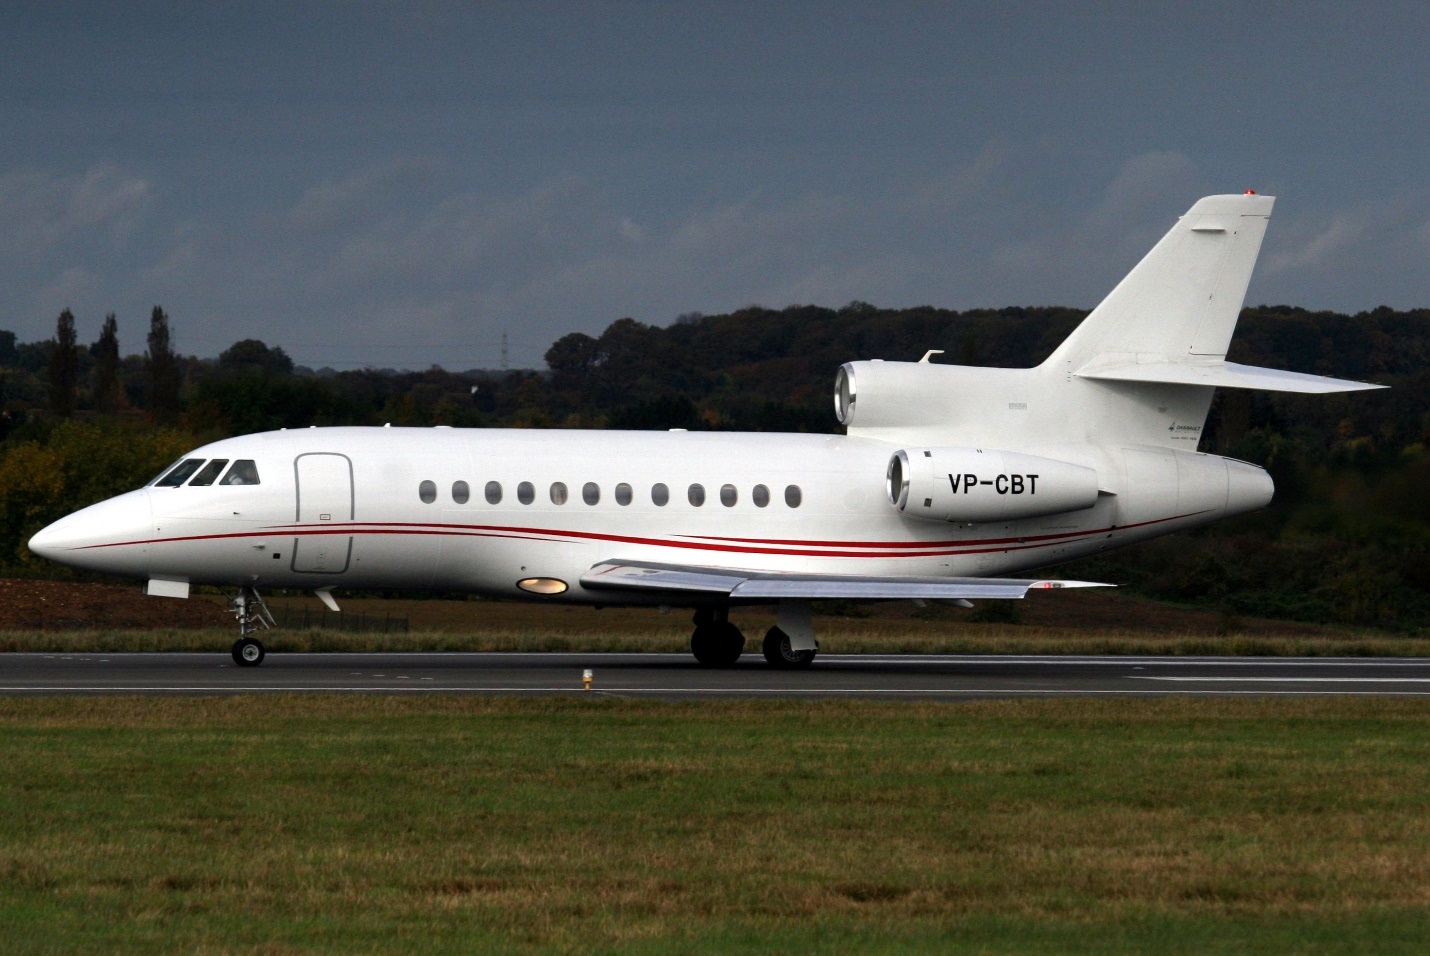 Aircraft Listing - Falcon 900 listed for sale